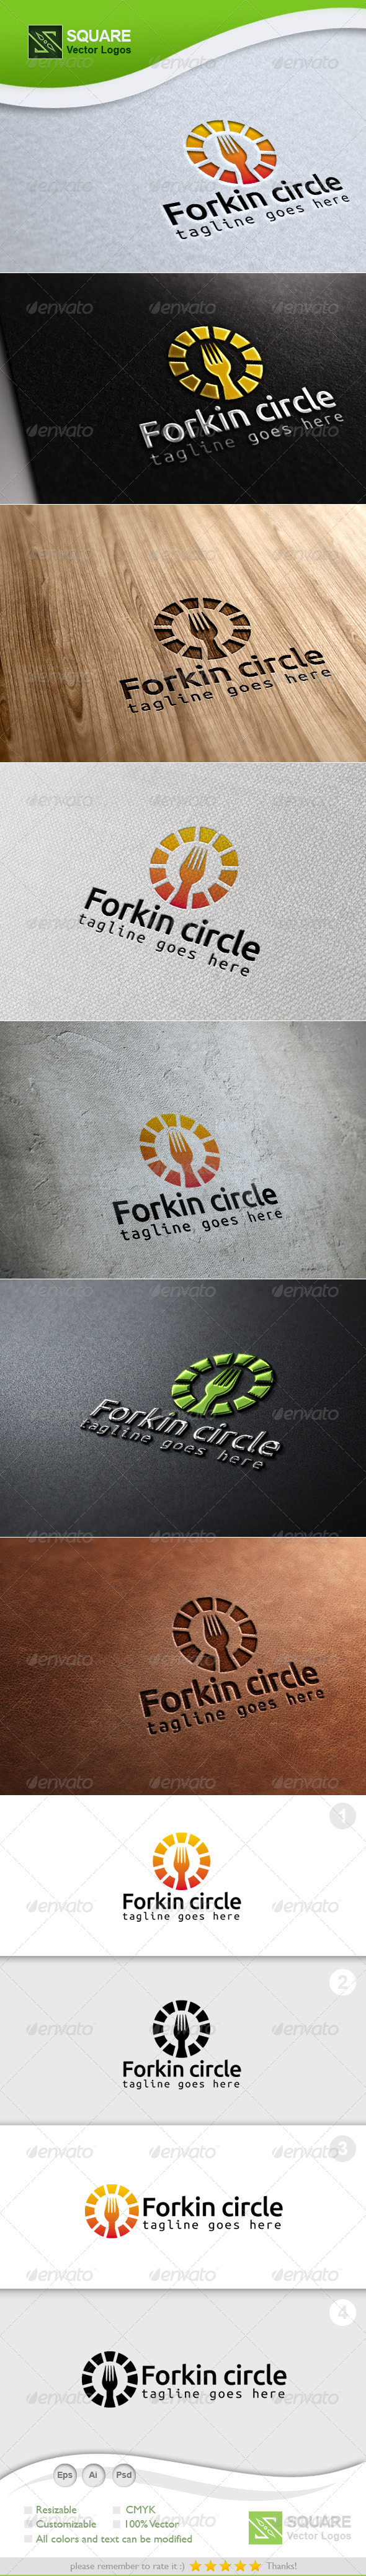 Circle, Fork Vector Logo Template - Food Logo Templates